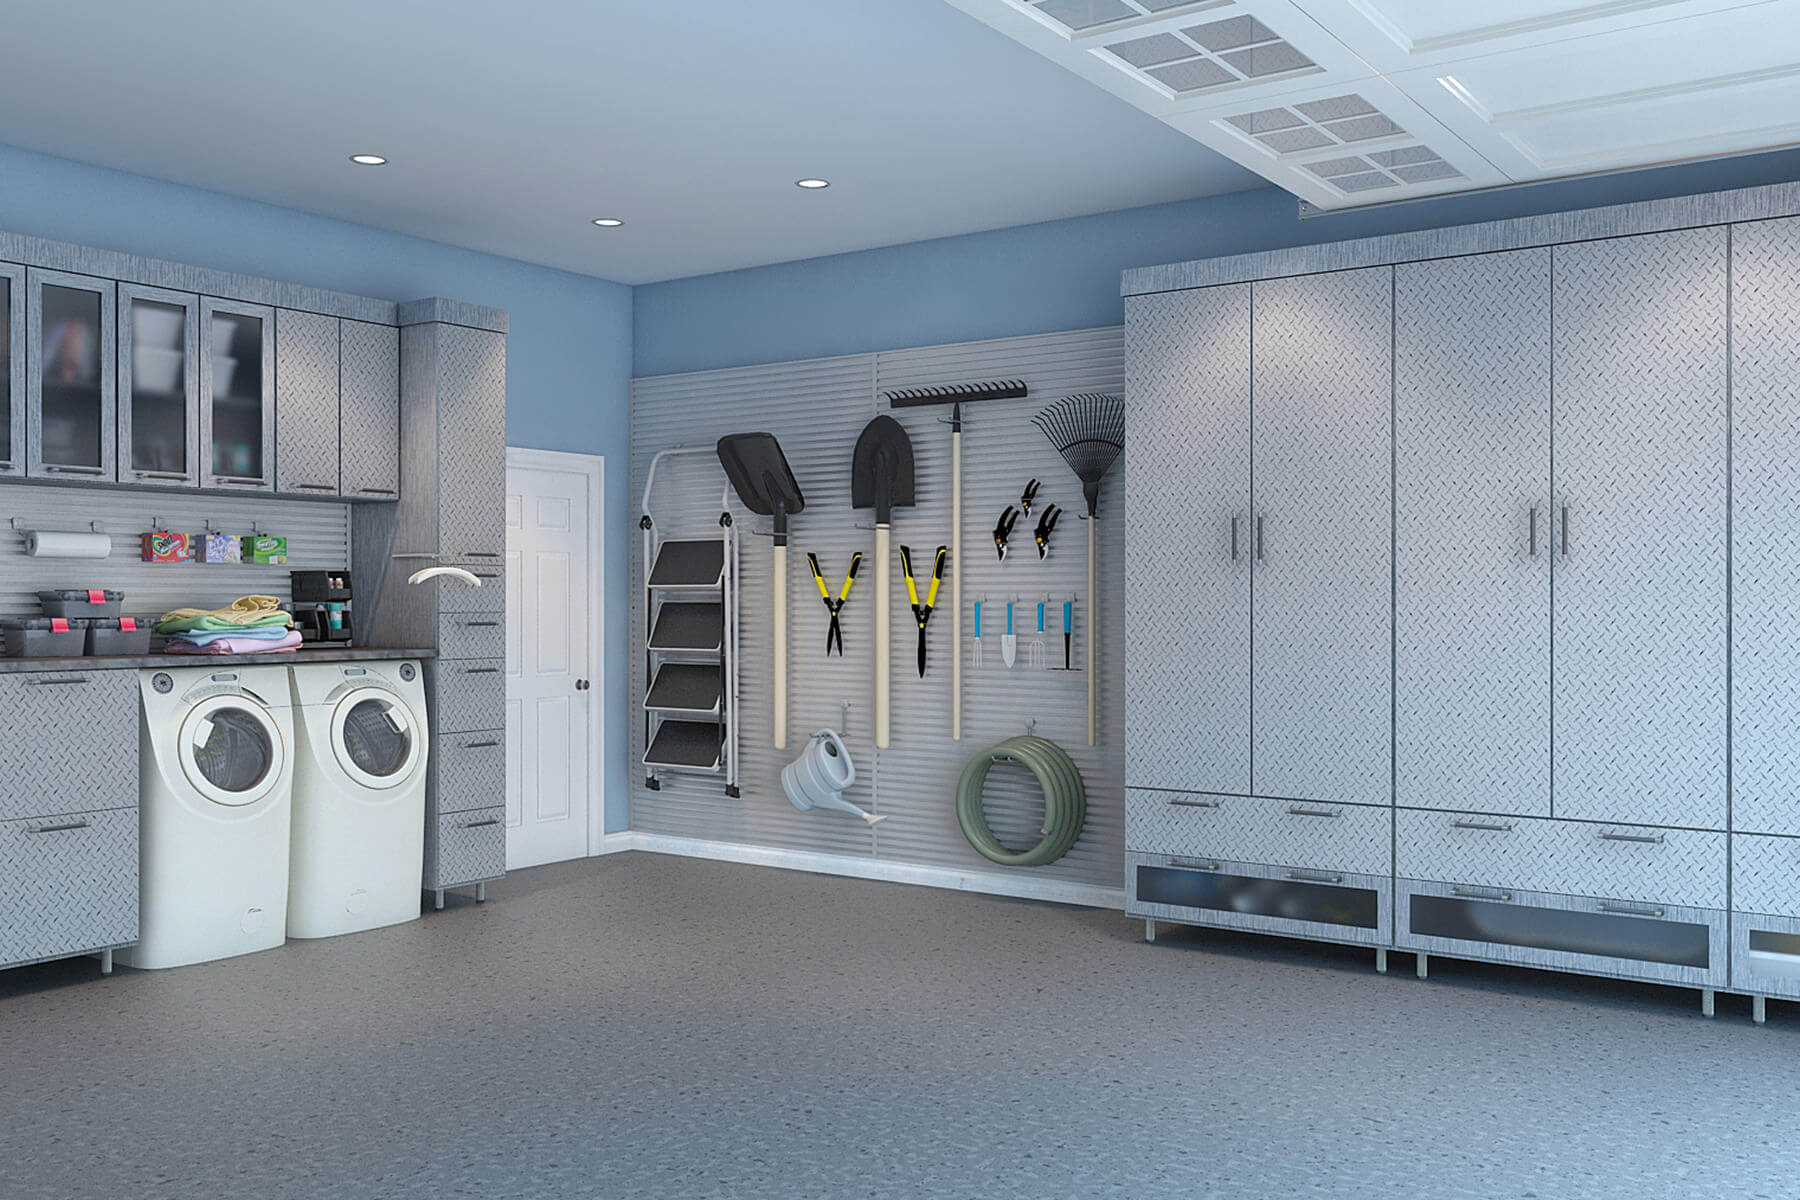 Laundry room and bathroom combo designs - 3 Garage Laundry Room